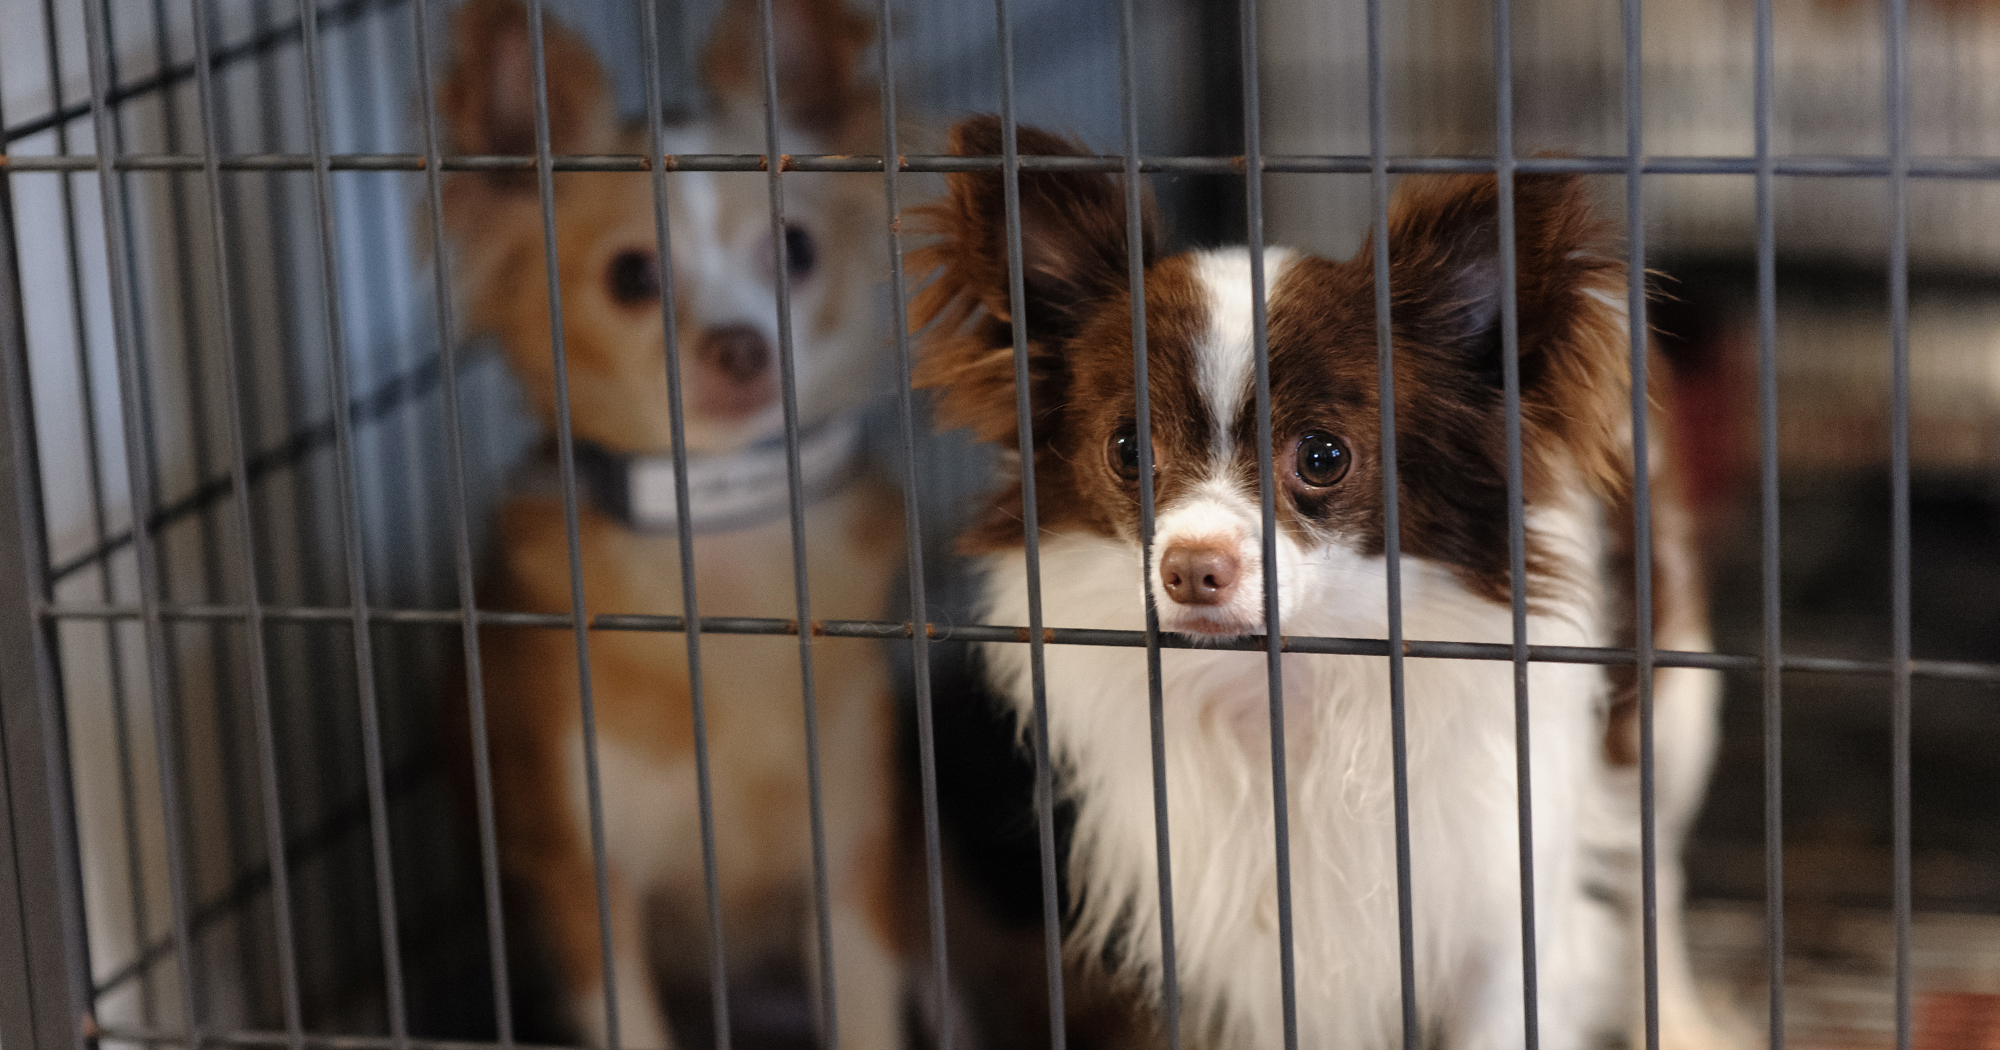 Stopping Puppy Mills | The Humane Society of the United States